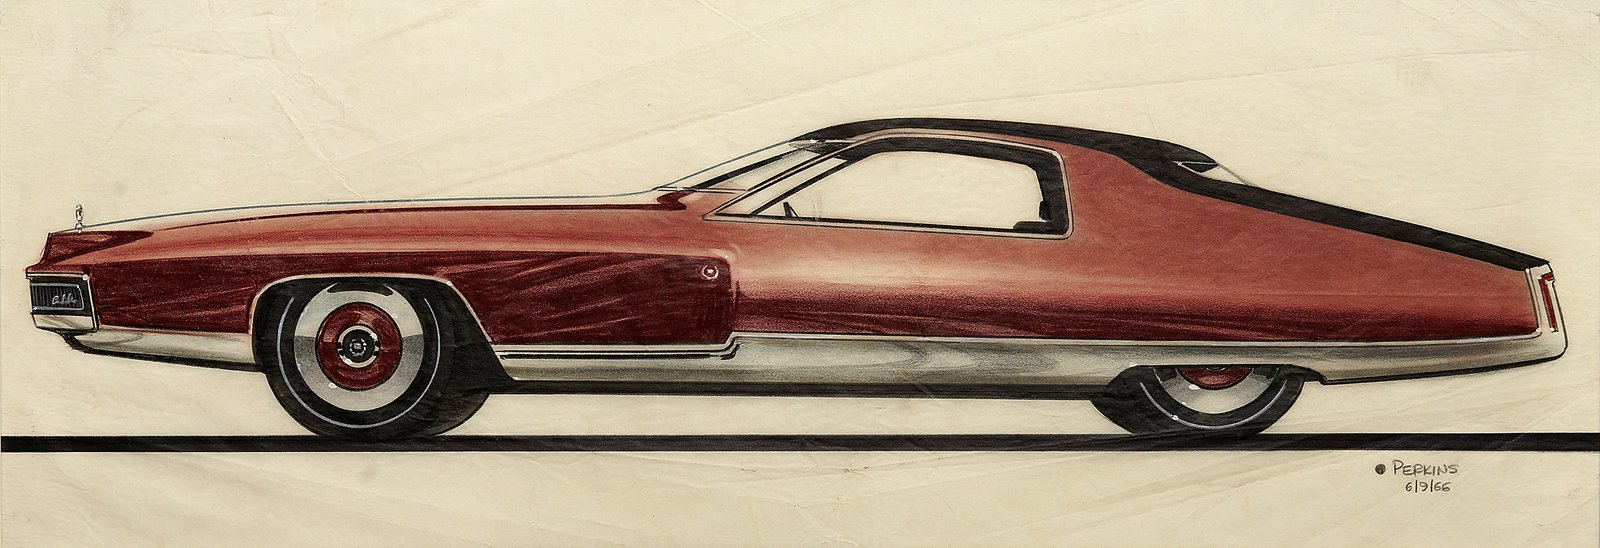 John Perkins, Design for Cadillac, 1966.  Photo 1 of 7 in When the Future Had Fins: Fantastical Vintage Auto Drawings